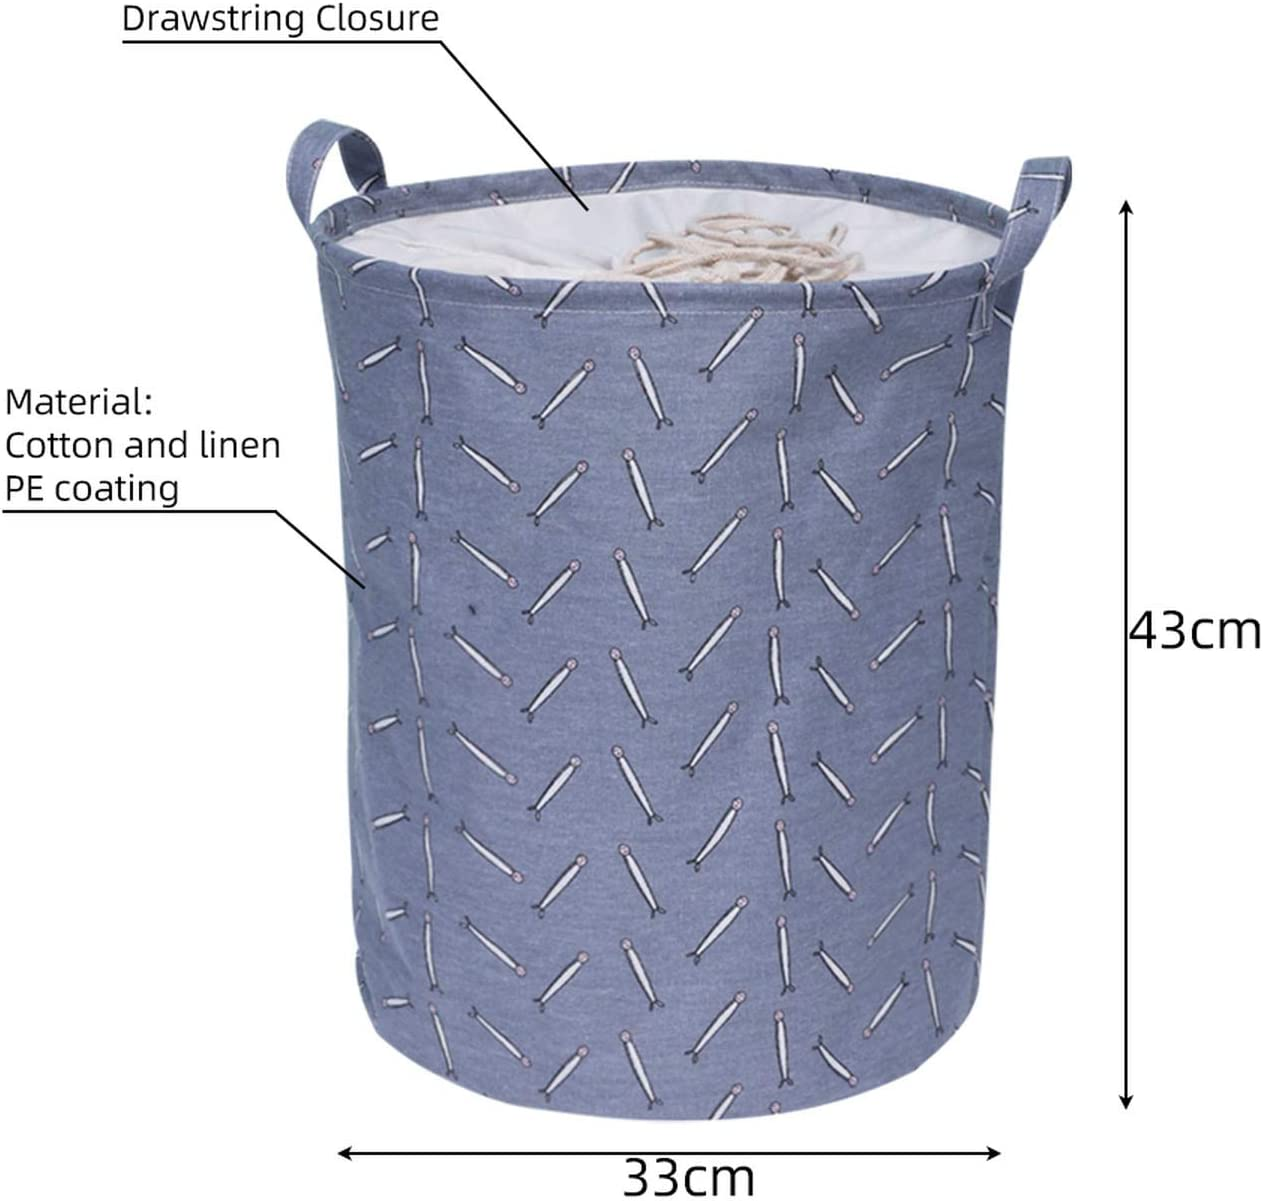 Krystal_wisdom Folding Collapsible Laundry Basket Large Capacity Drawstring Closure Laundry Hamper Canvas Storage Organizer with Handle Bin 1pc,A8,